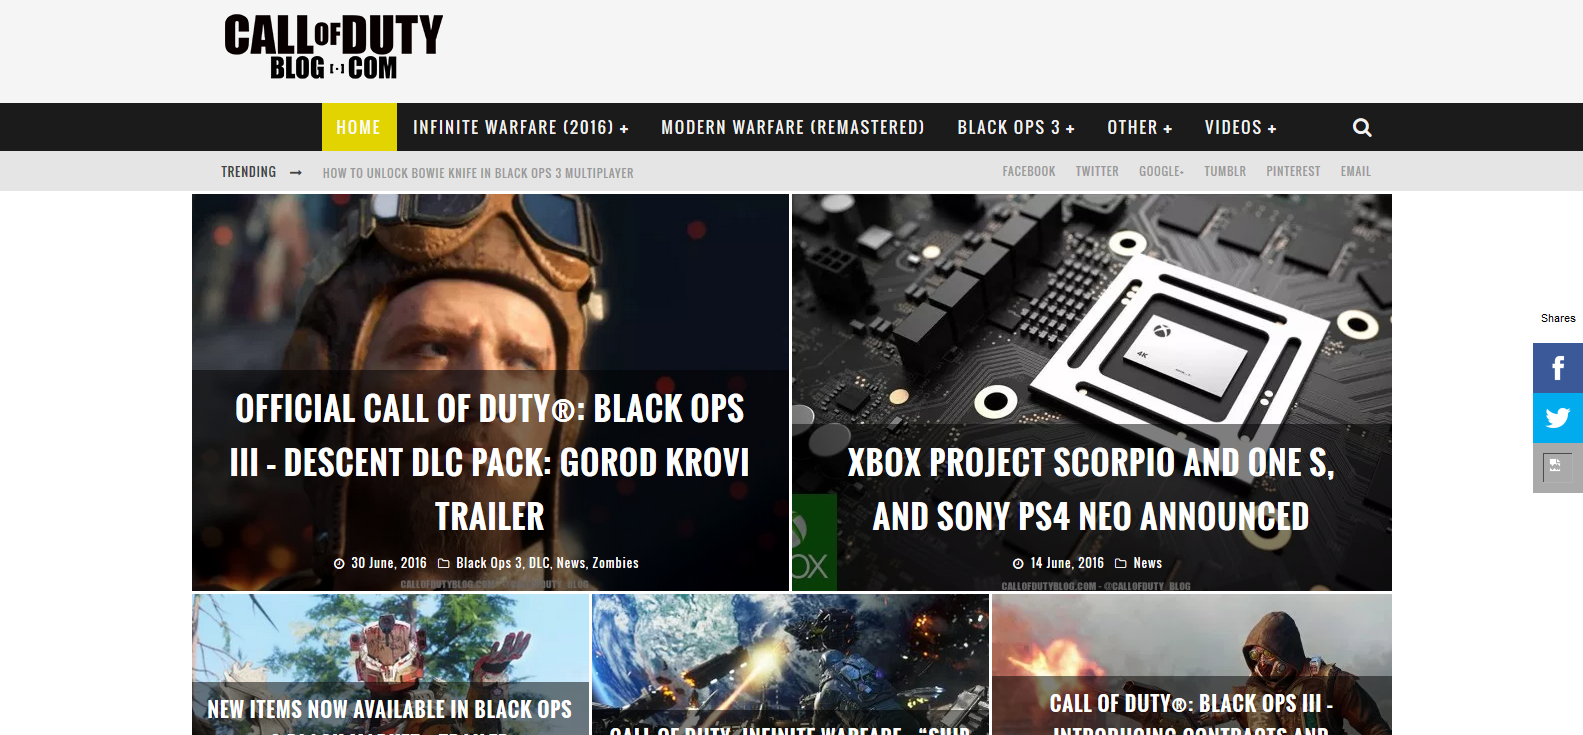 End of Call of Duty Blog